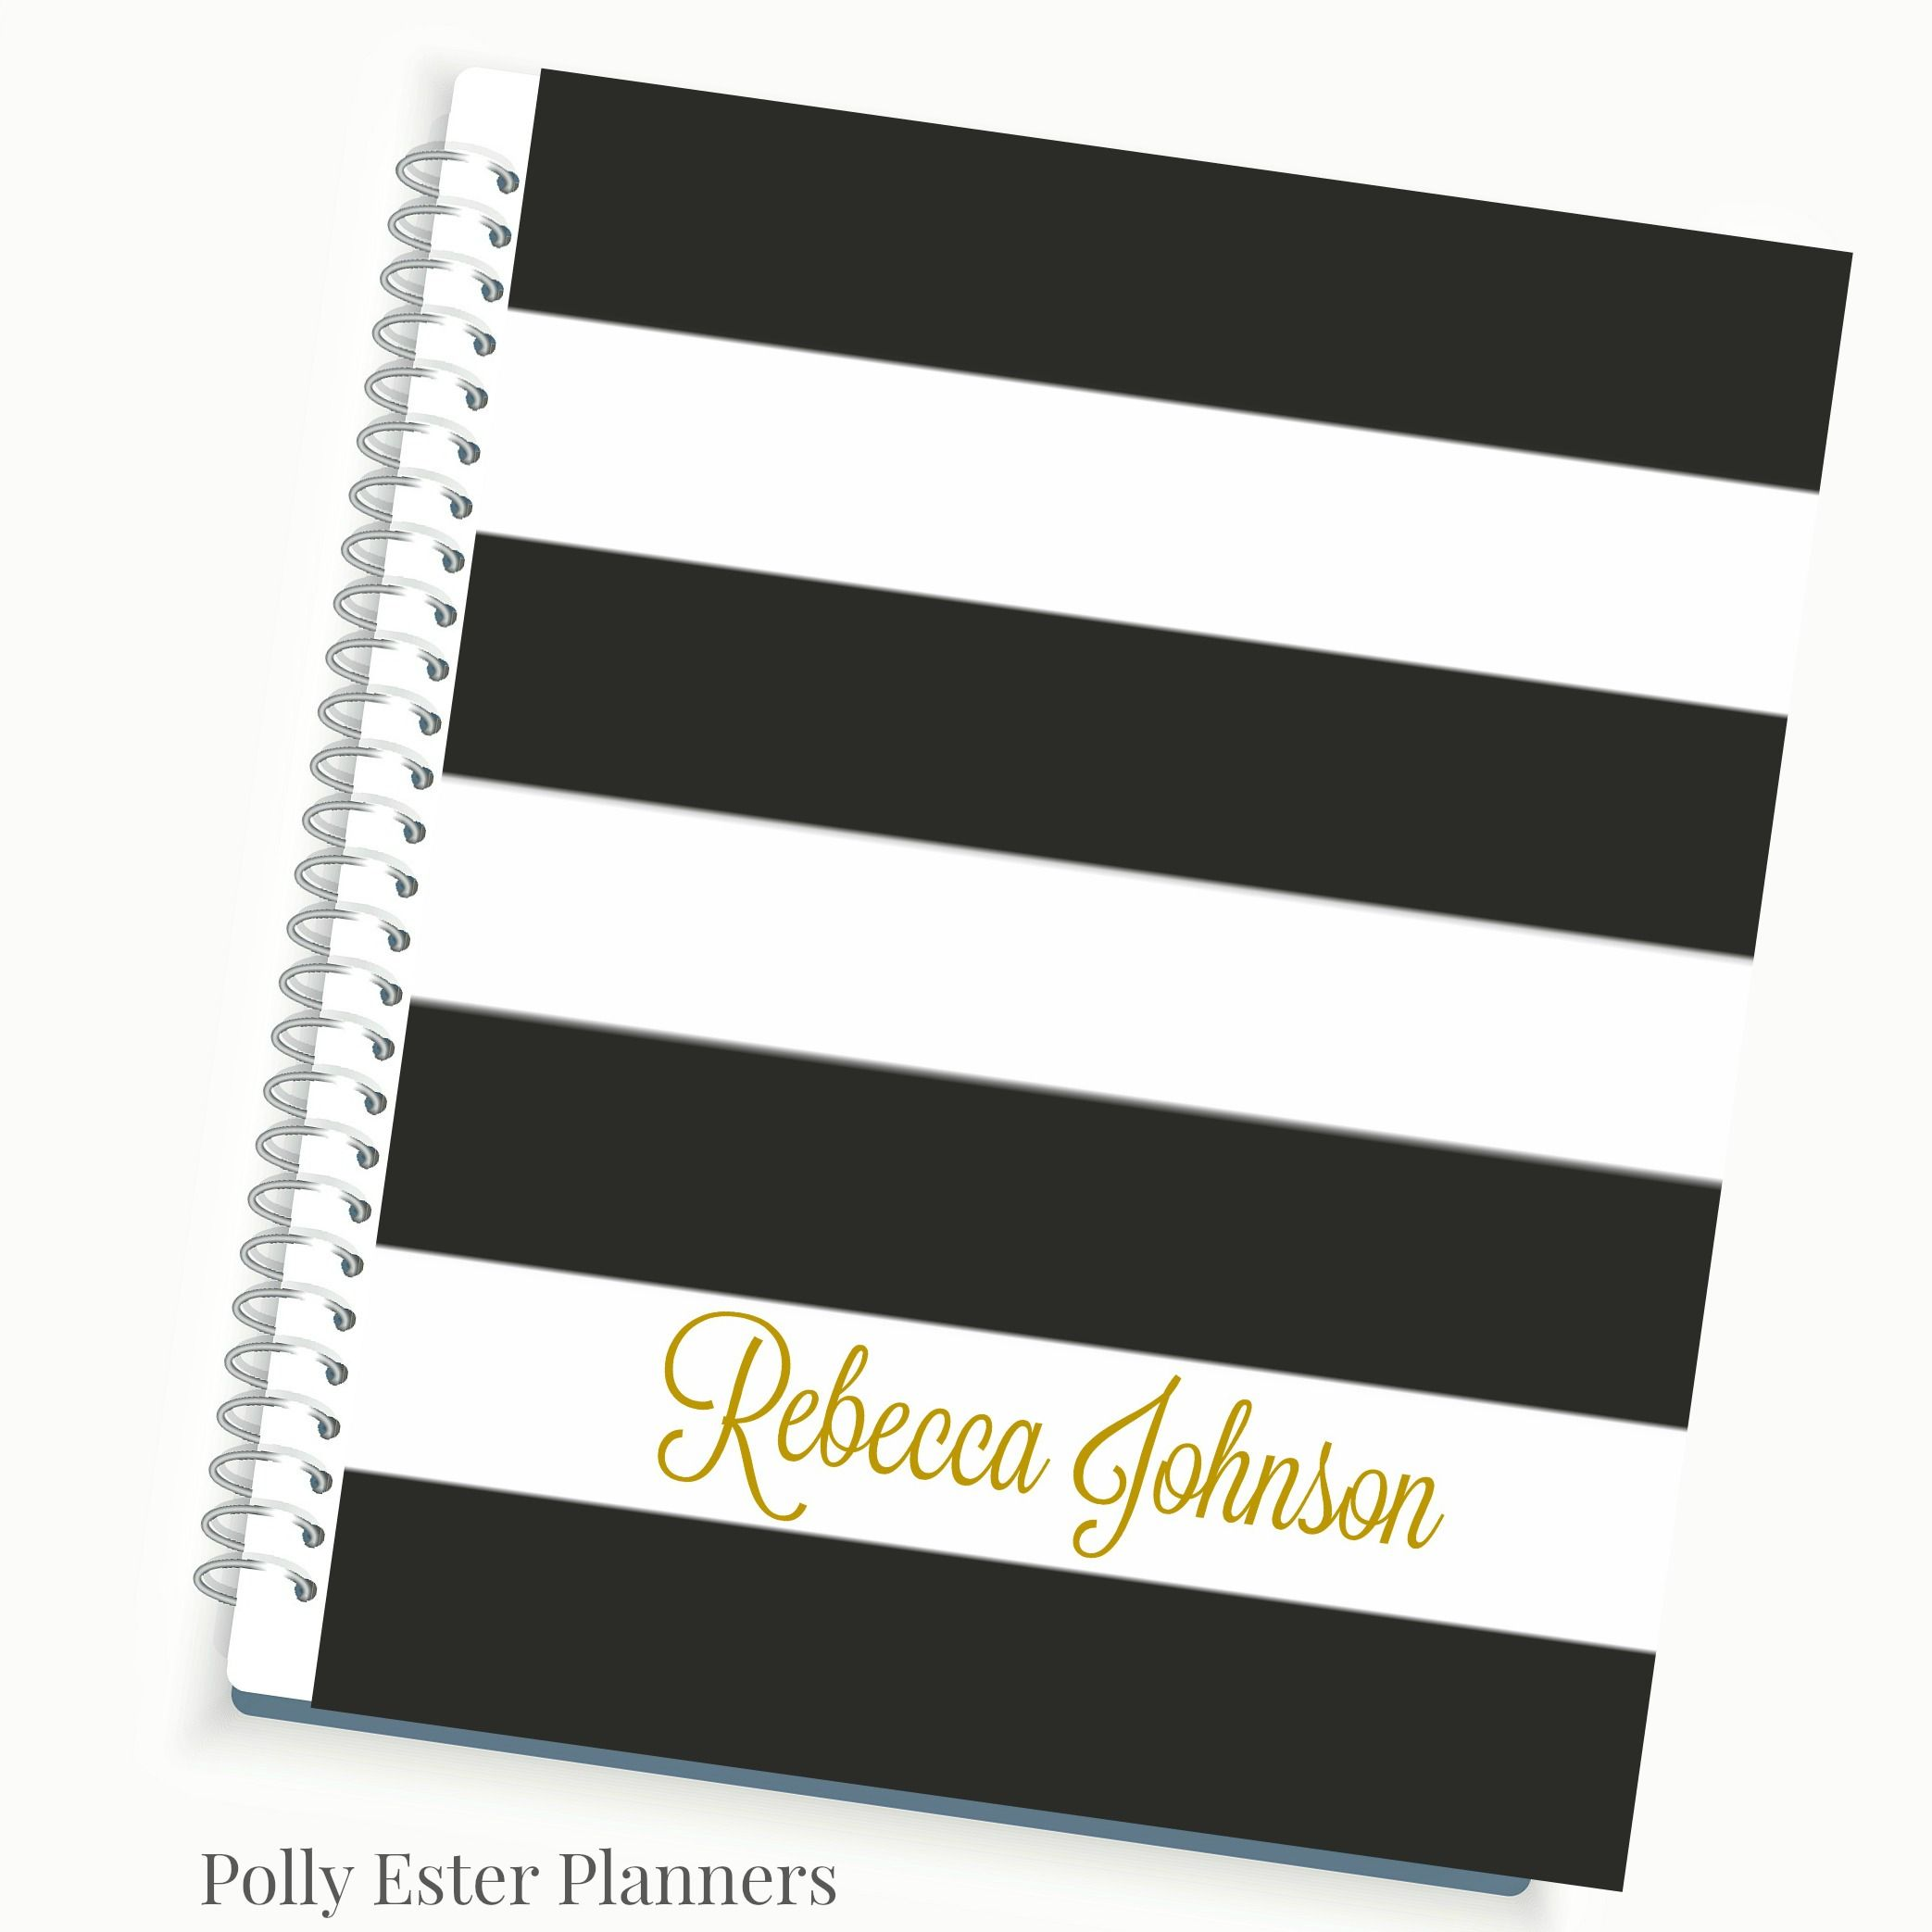 Daily Planner 2016 Planners And Organizers With Personalized Covers